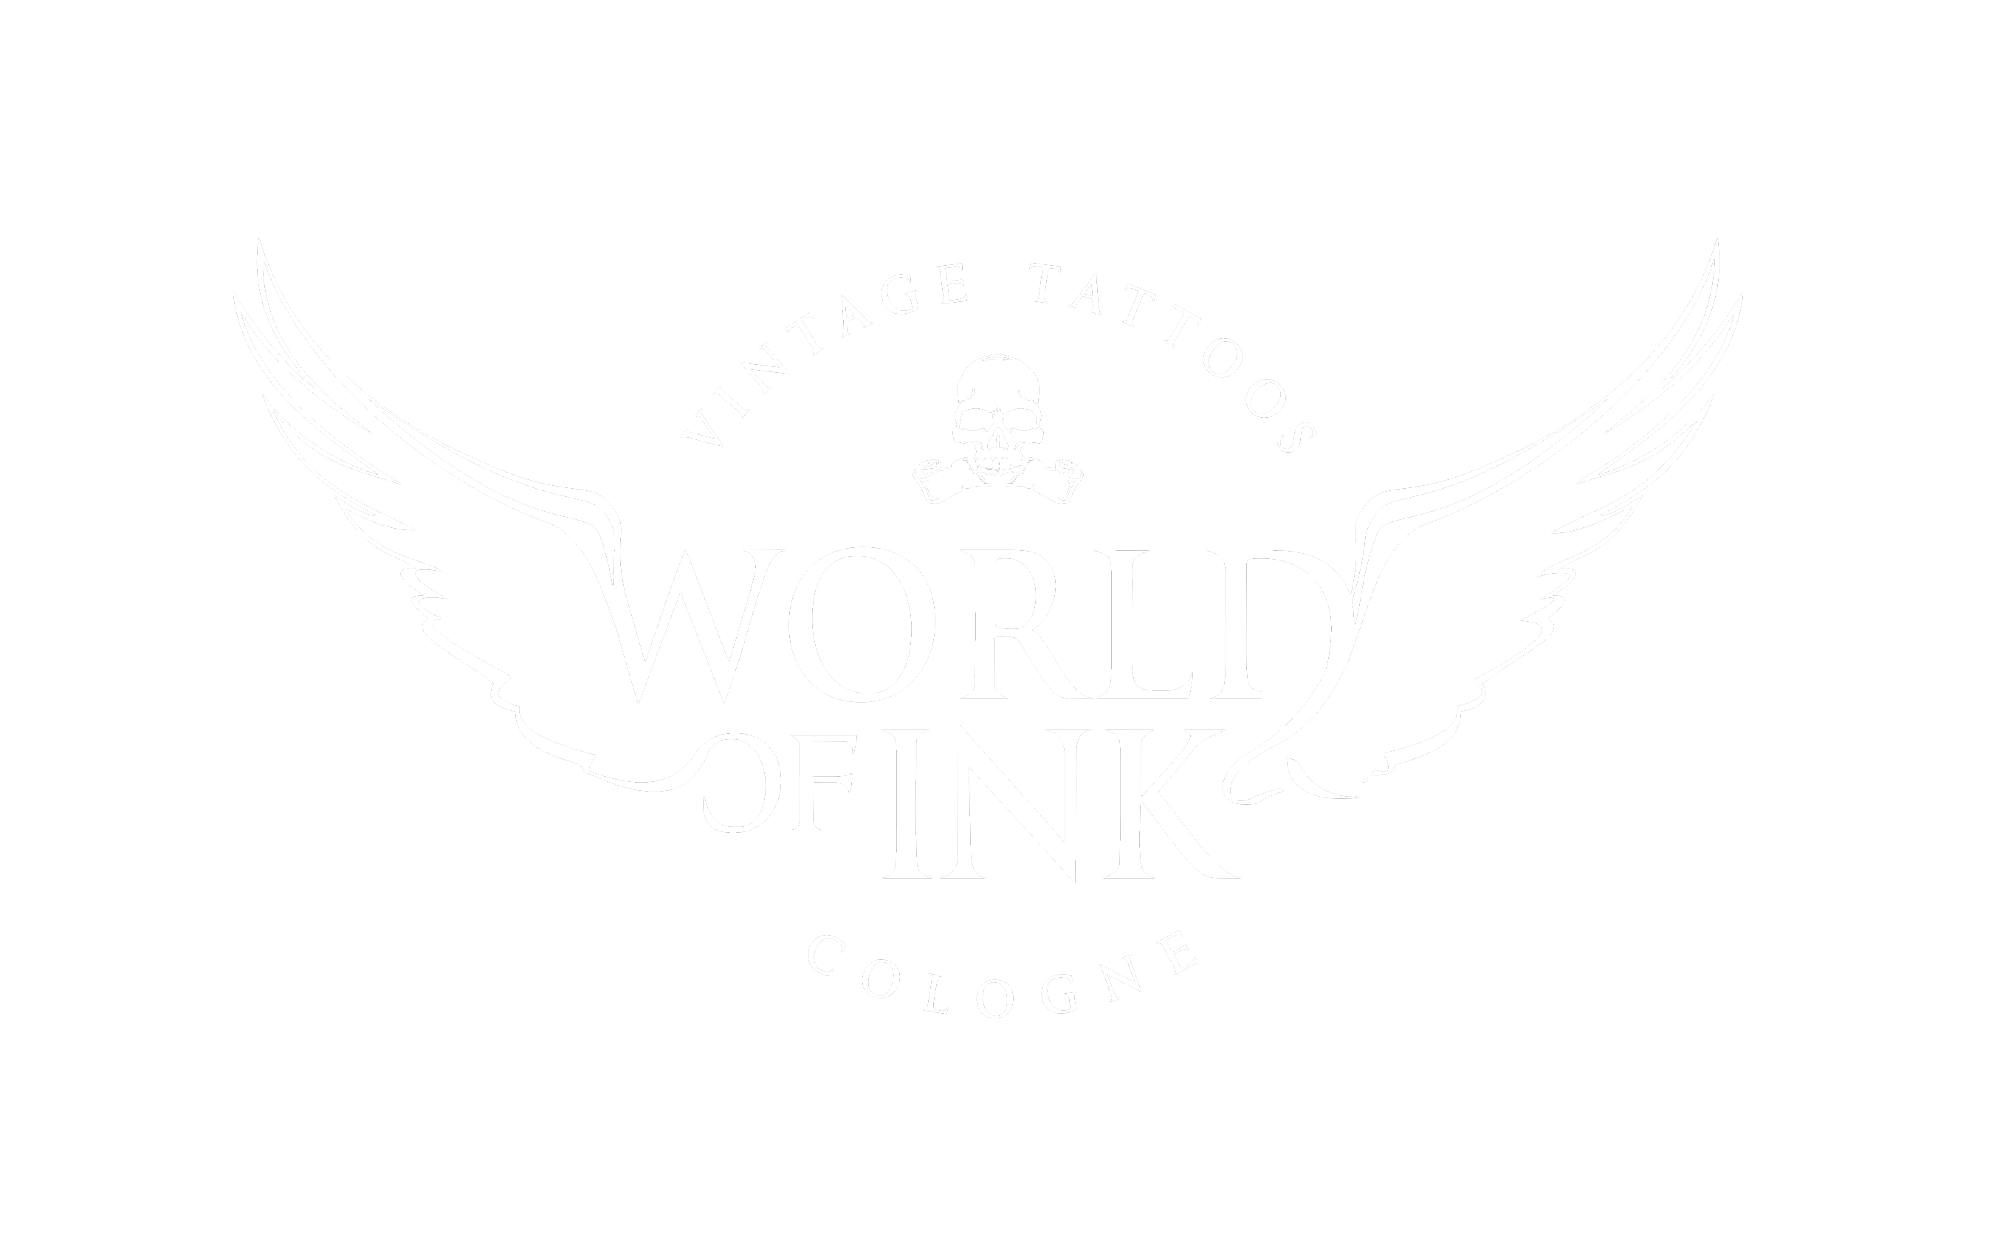 World of Ink